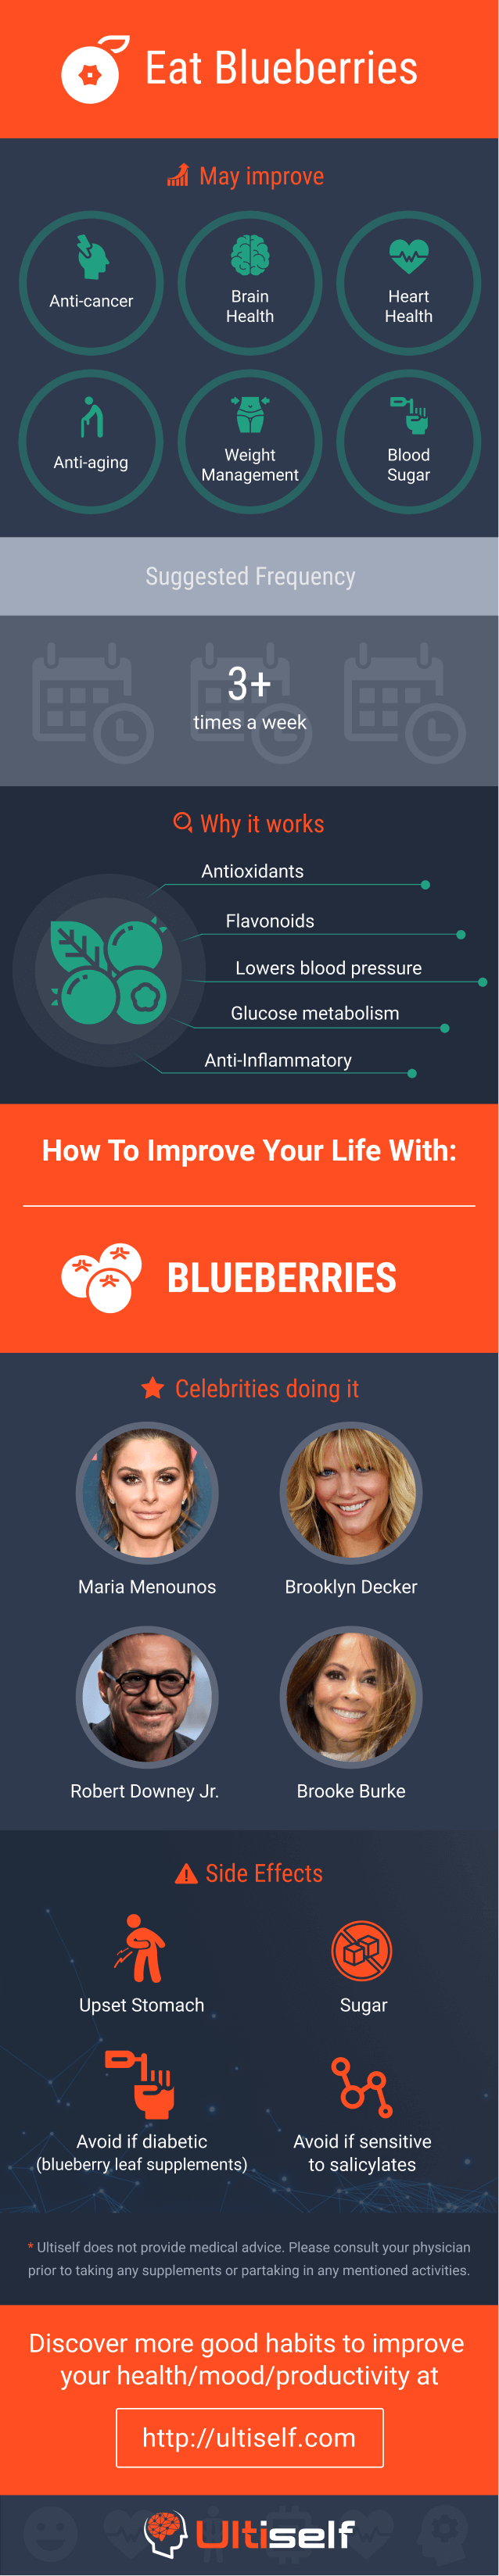 Eat blueberries infographic